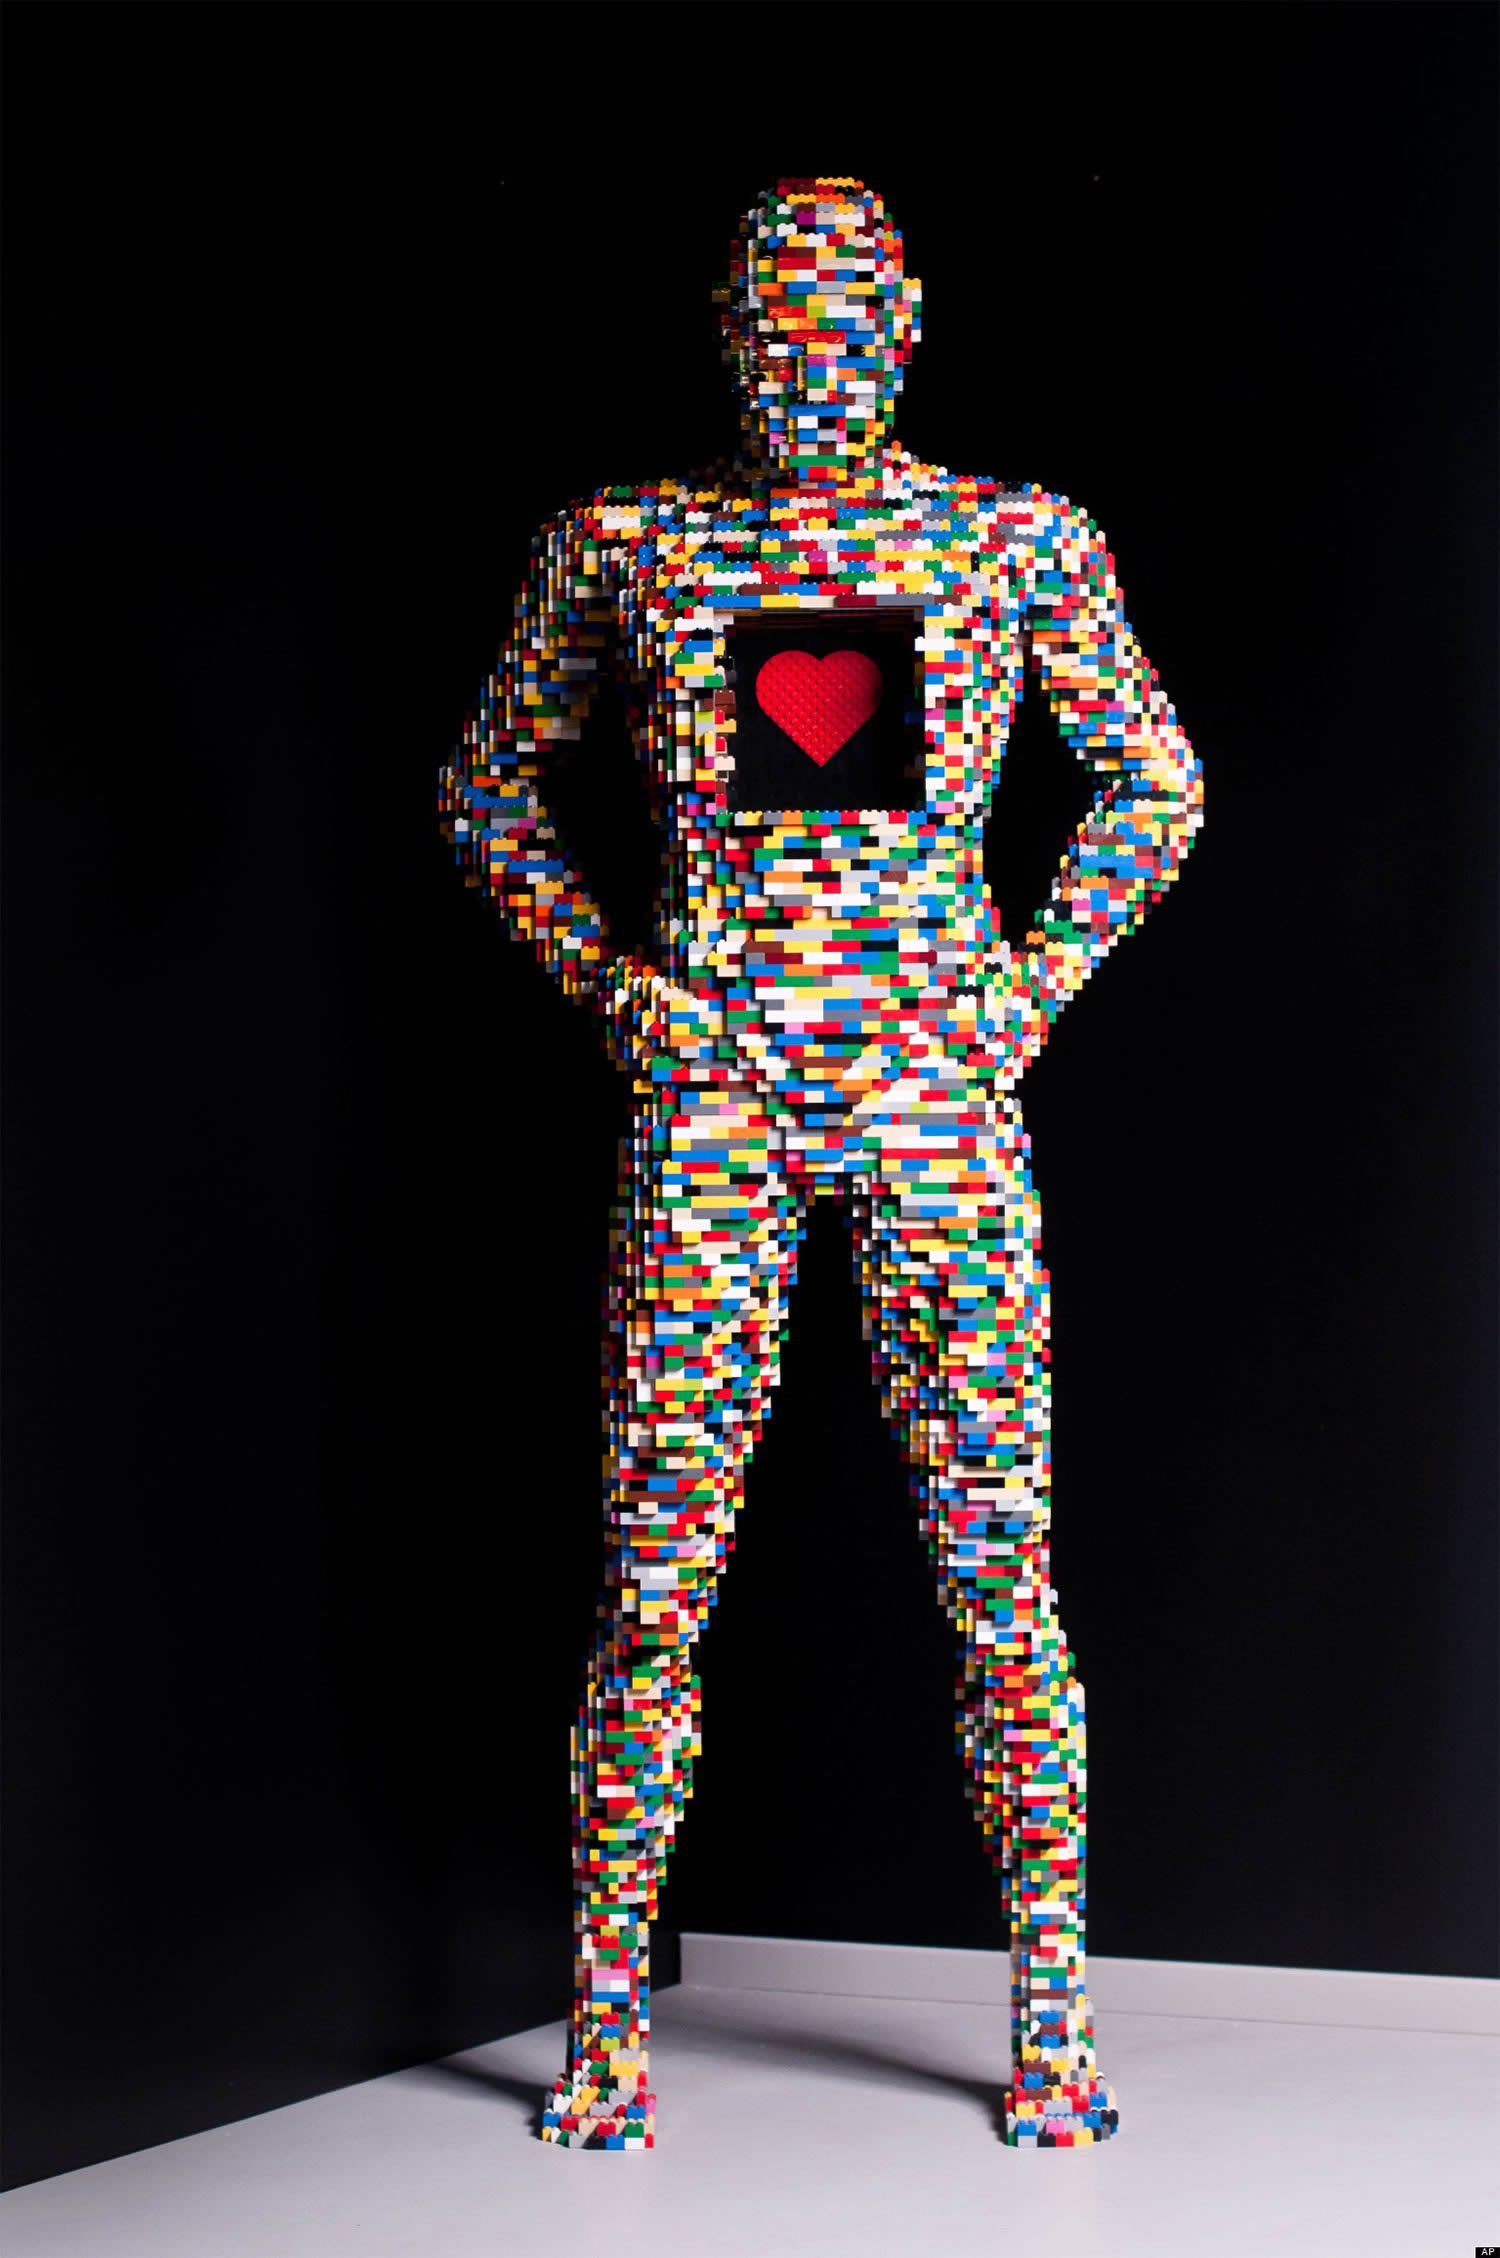 multicolored lego man with heart, by nathan sawaya